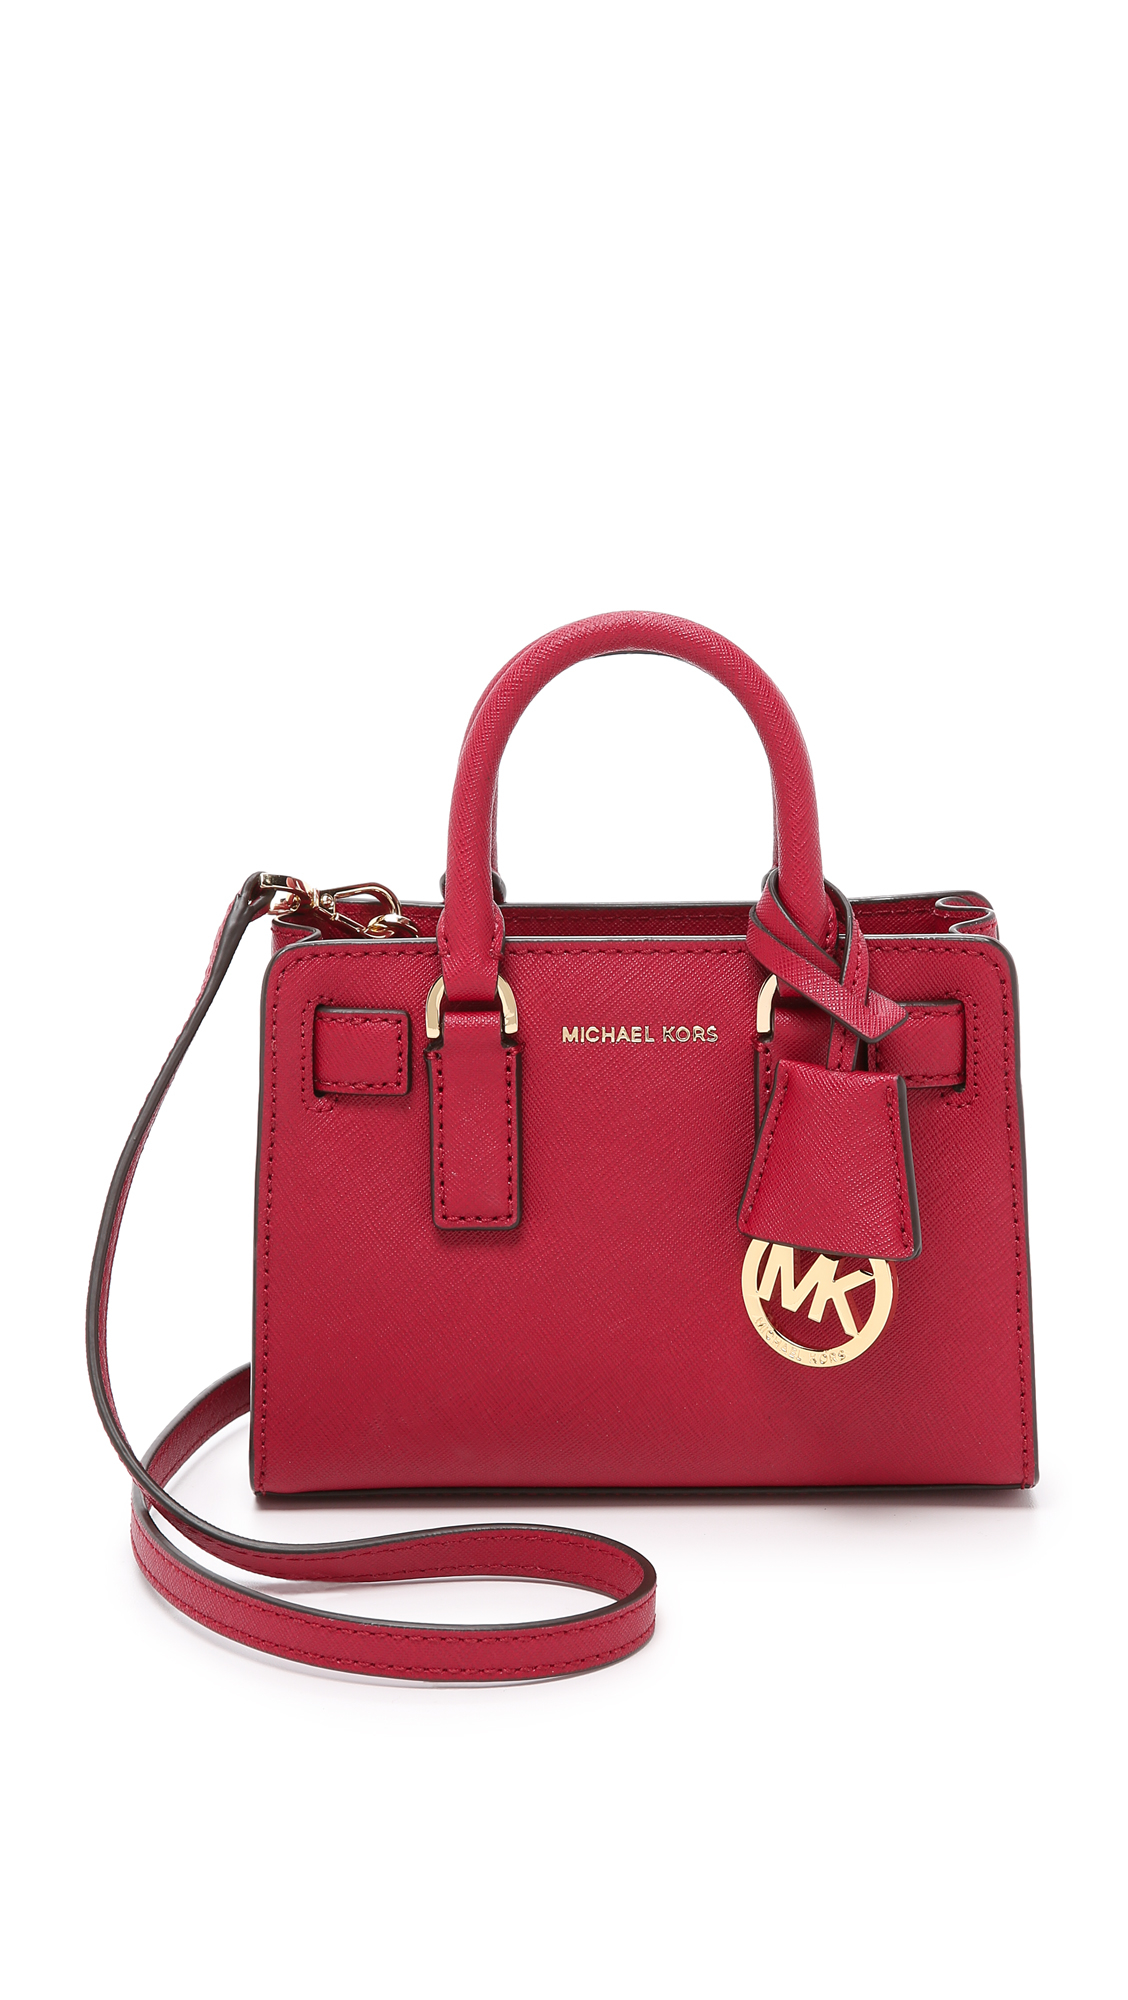 30d230c60c86 ... shopping lyst michael michael kors dillon extra small cross body bag in  red da4c7 c53f9 ...